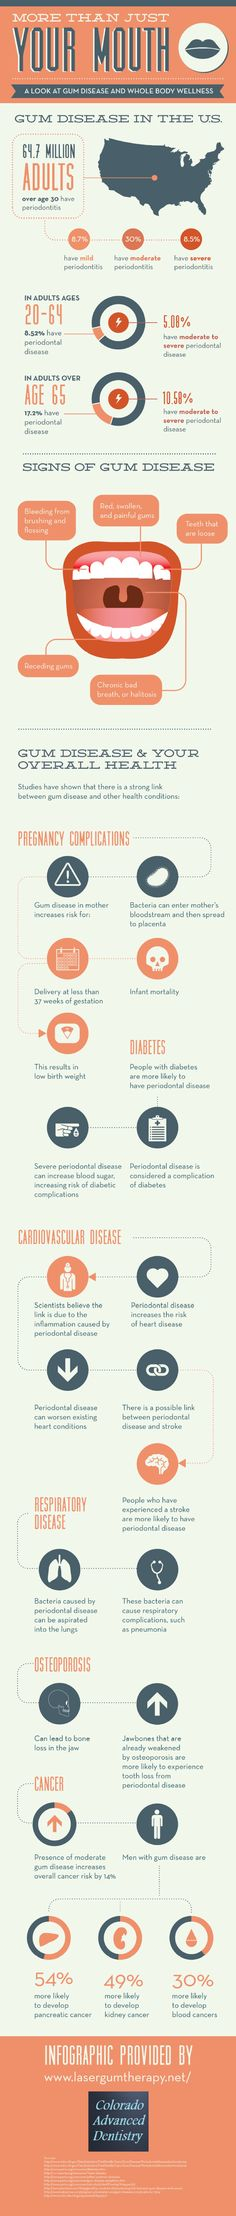 Gum disease is common among American adults. When pregnant women suffer from gum disease, they may also be putting their unborn babies at risk. Read about the risks of gum disease during pregnancy on this infographic from a Denver dentist. Source: http://www.lasergumtherapy.net/662548/2013/03/13/more-than-just-your-mouth-a-look-at-gum-disease-and-whole-body-wellness-infographic.html